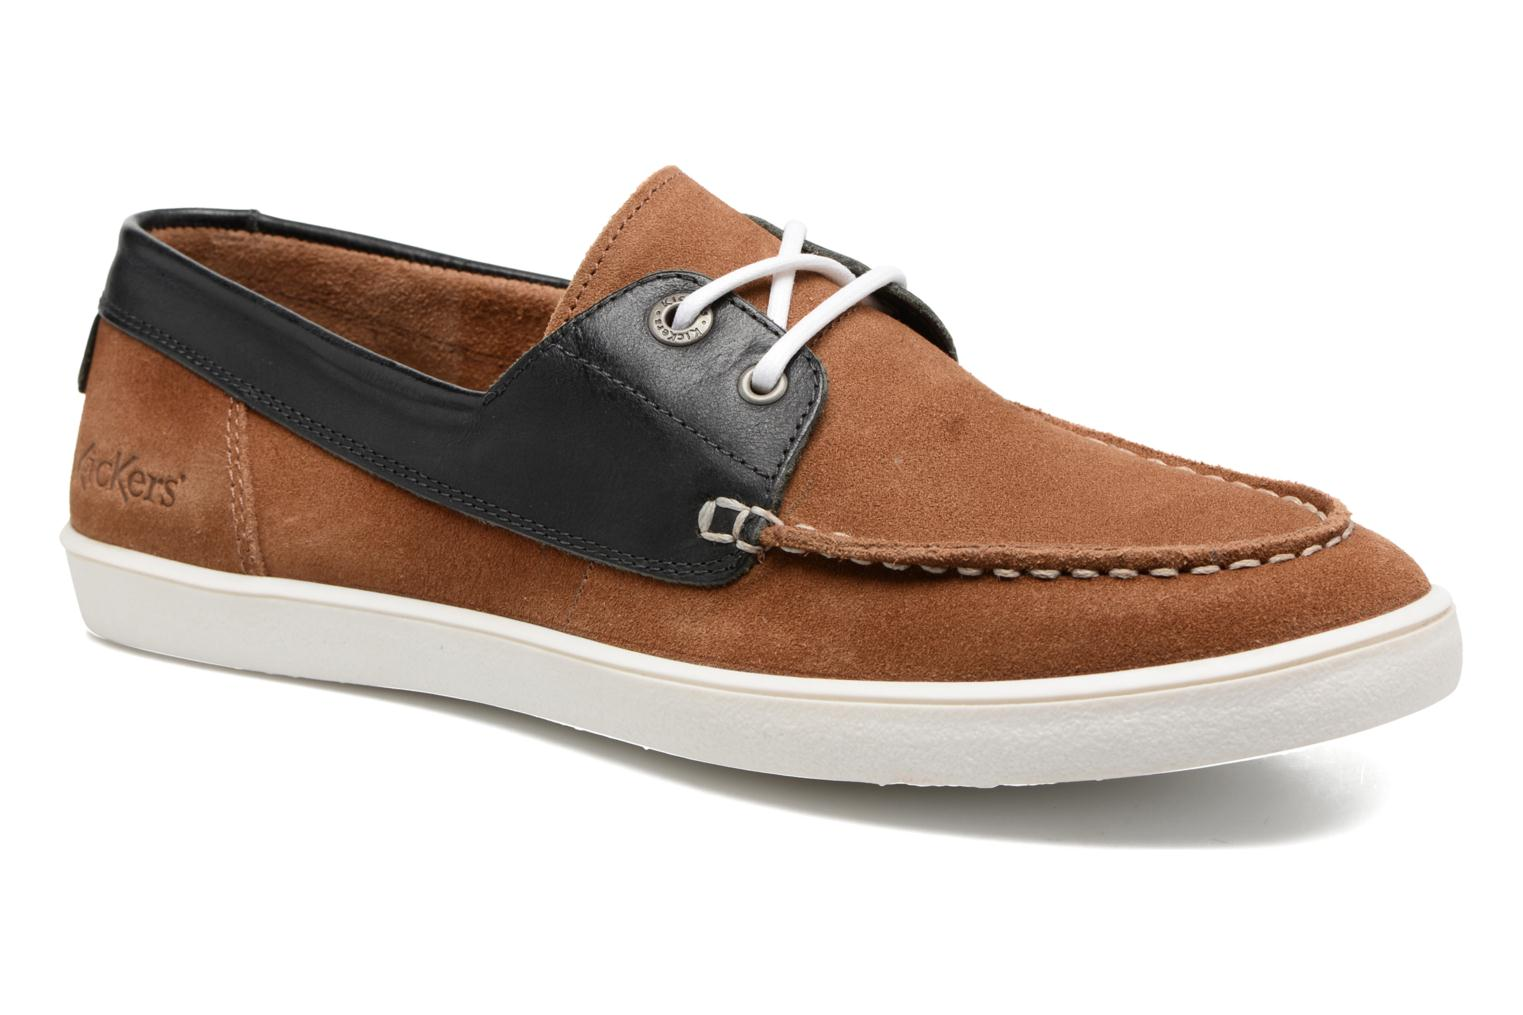 Marques Chaussure homme Kickers homme Calixine Bleu Fonce Camel